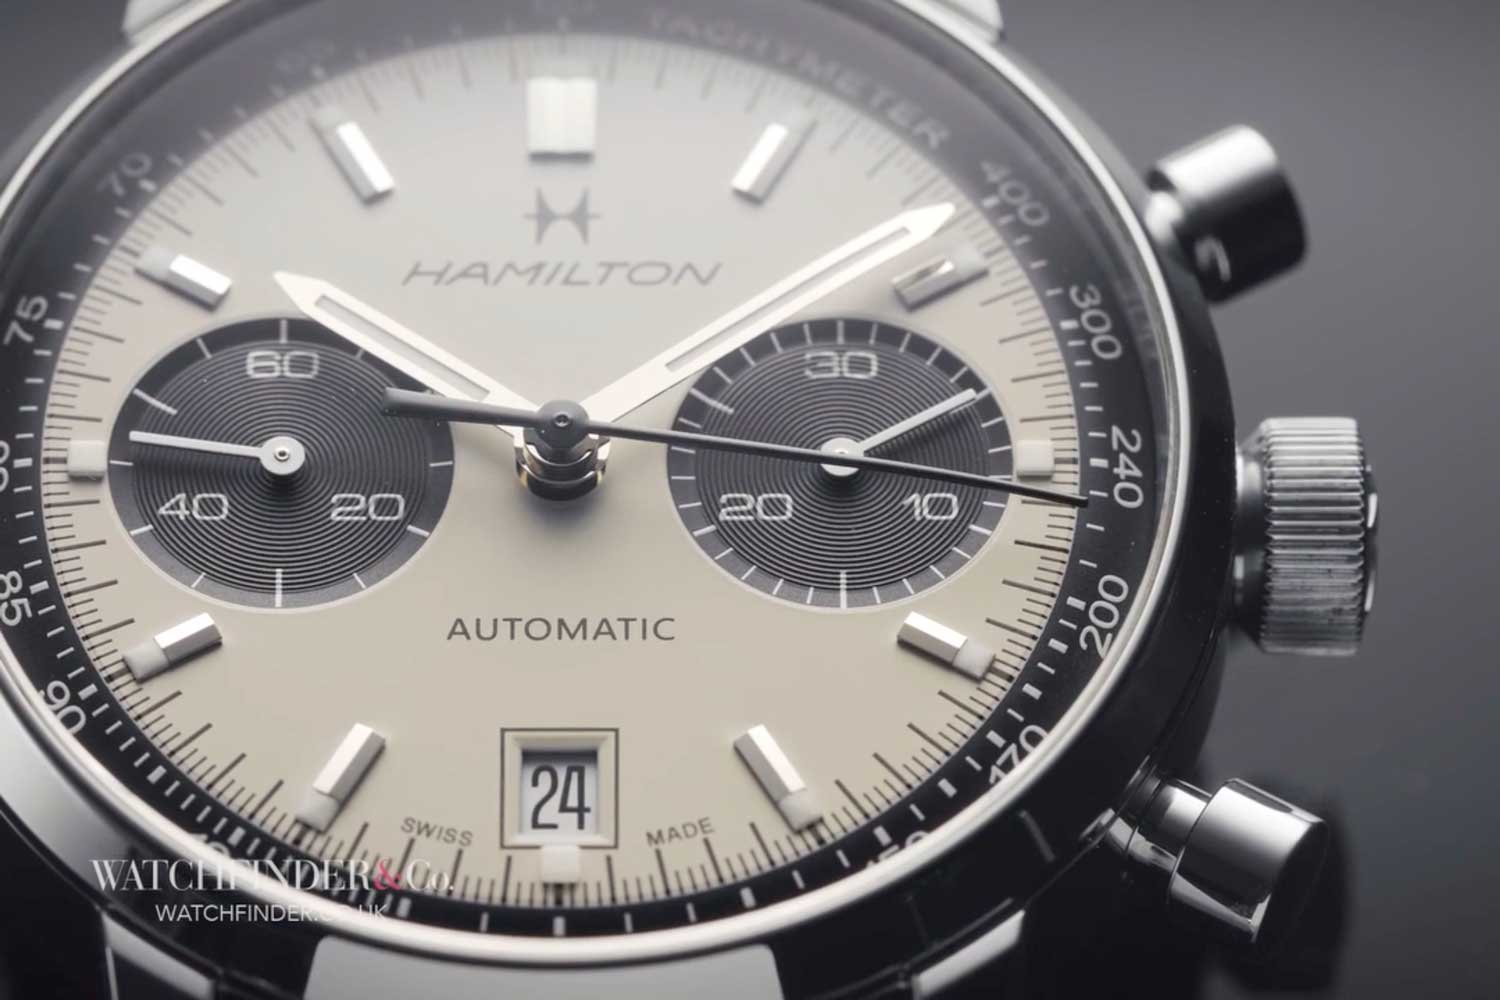 Hamilton's 40mm Intra-Matic is a homage that sticks very close to the 1969 original.